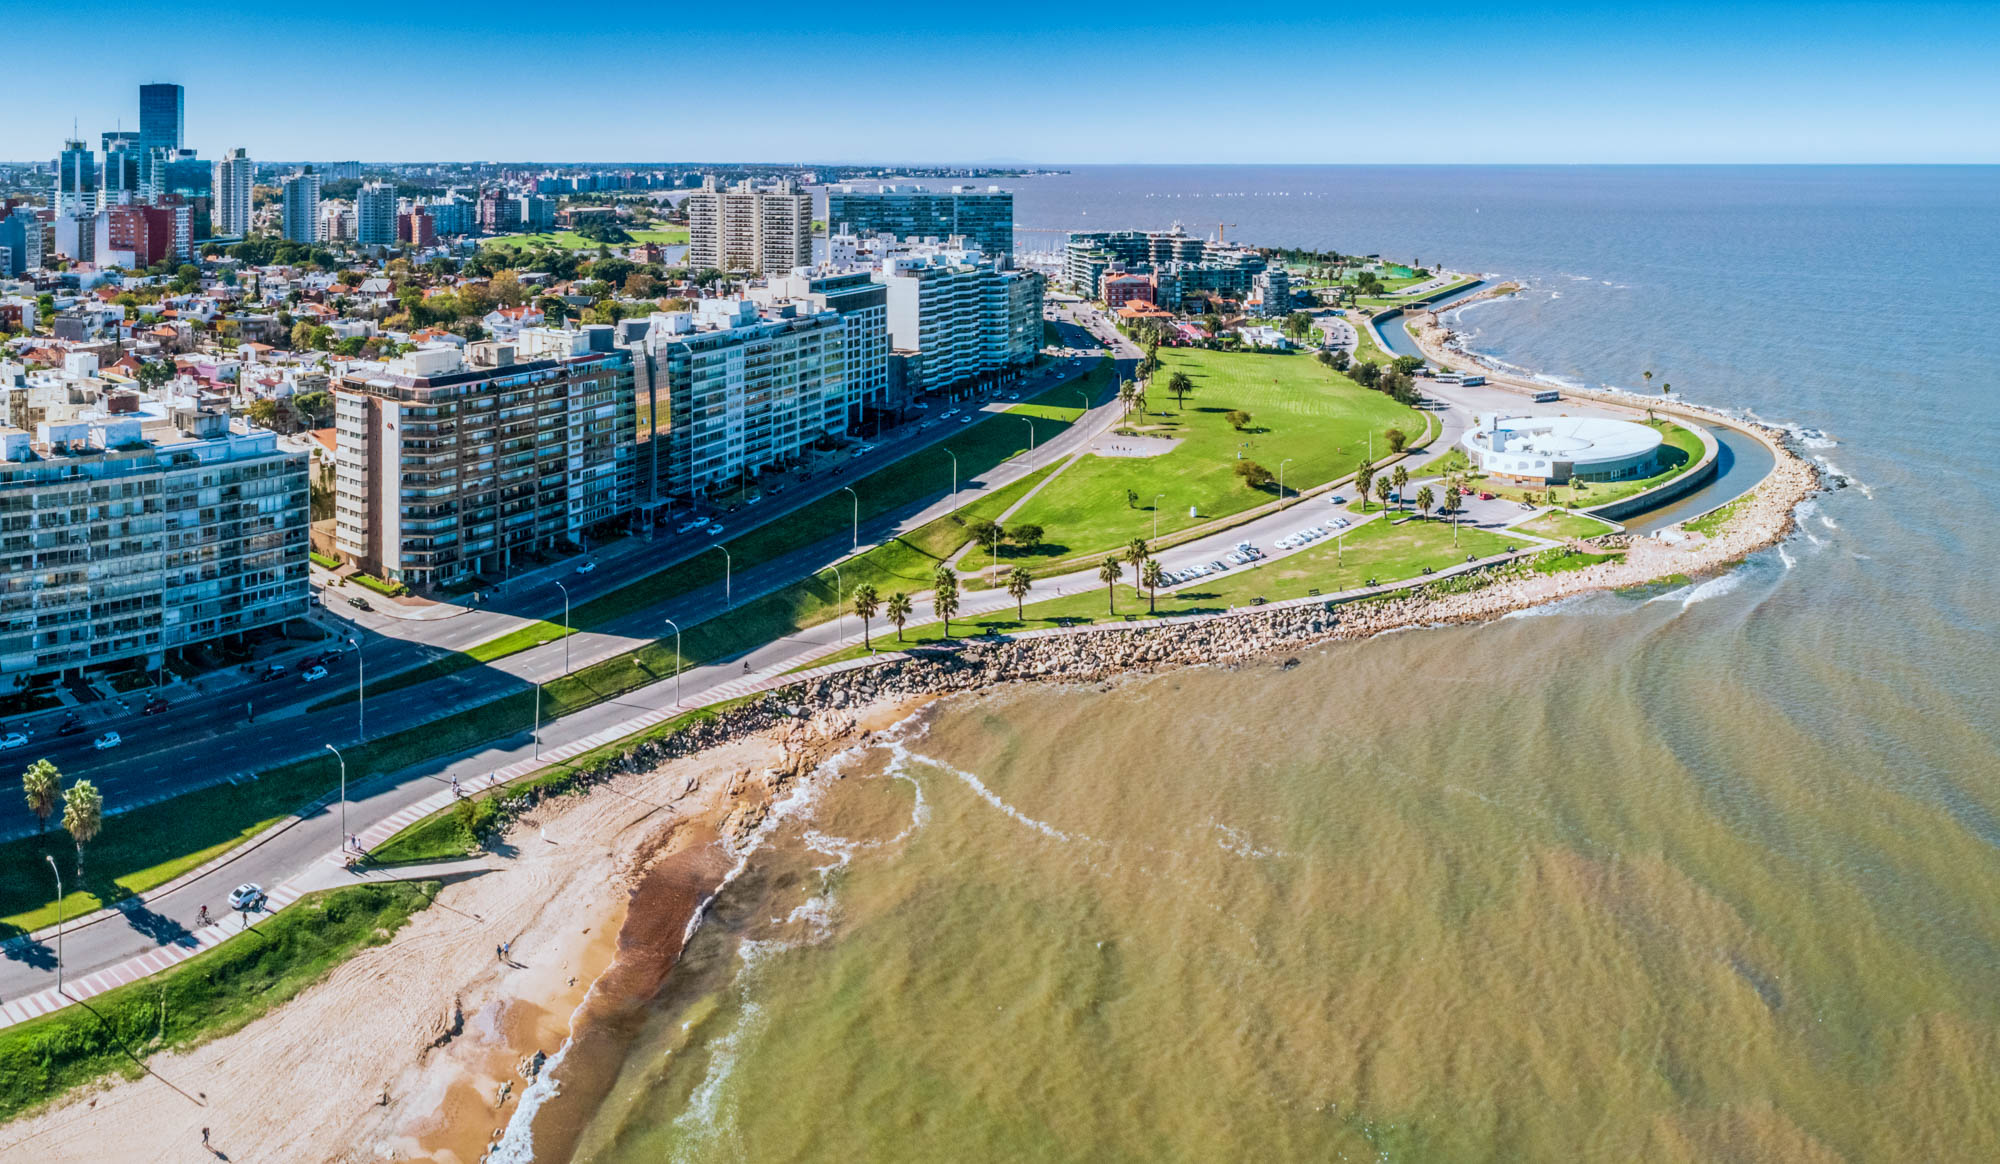 Aerial view, high angle view of Montevideo's coastline, Pocitos neighbourhood. Image taken outdoors, daylight.